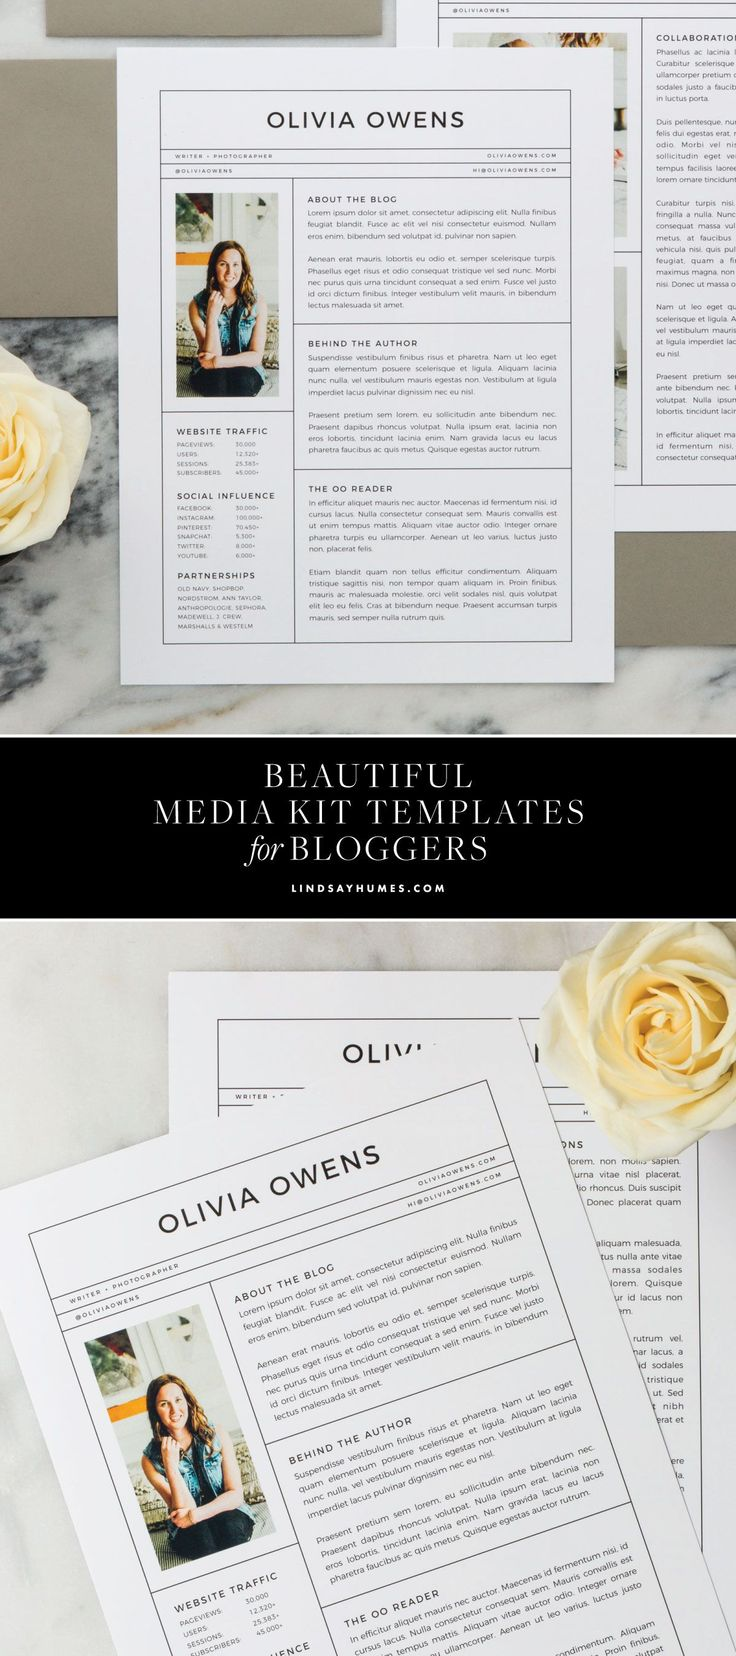 How to create a beautiful media kit for your lifestyle blog